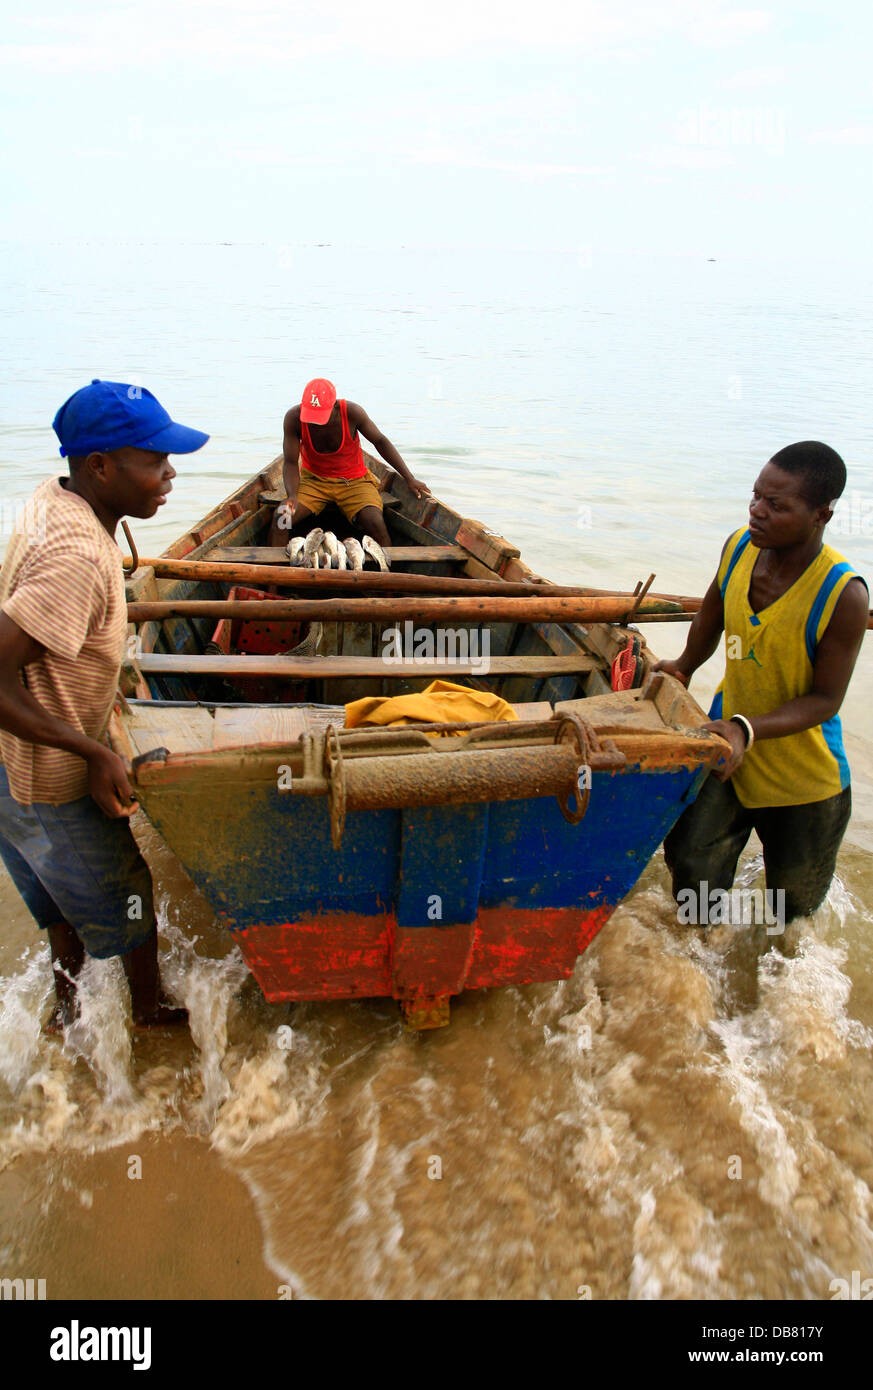 Industry - Fishing fishermen boat catch in Angola launhcing fishing boat in surf catch day ocean,�Jeremy Jowell/Moonshine - Stock Image